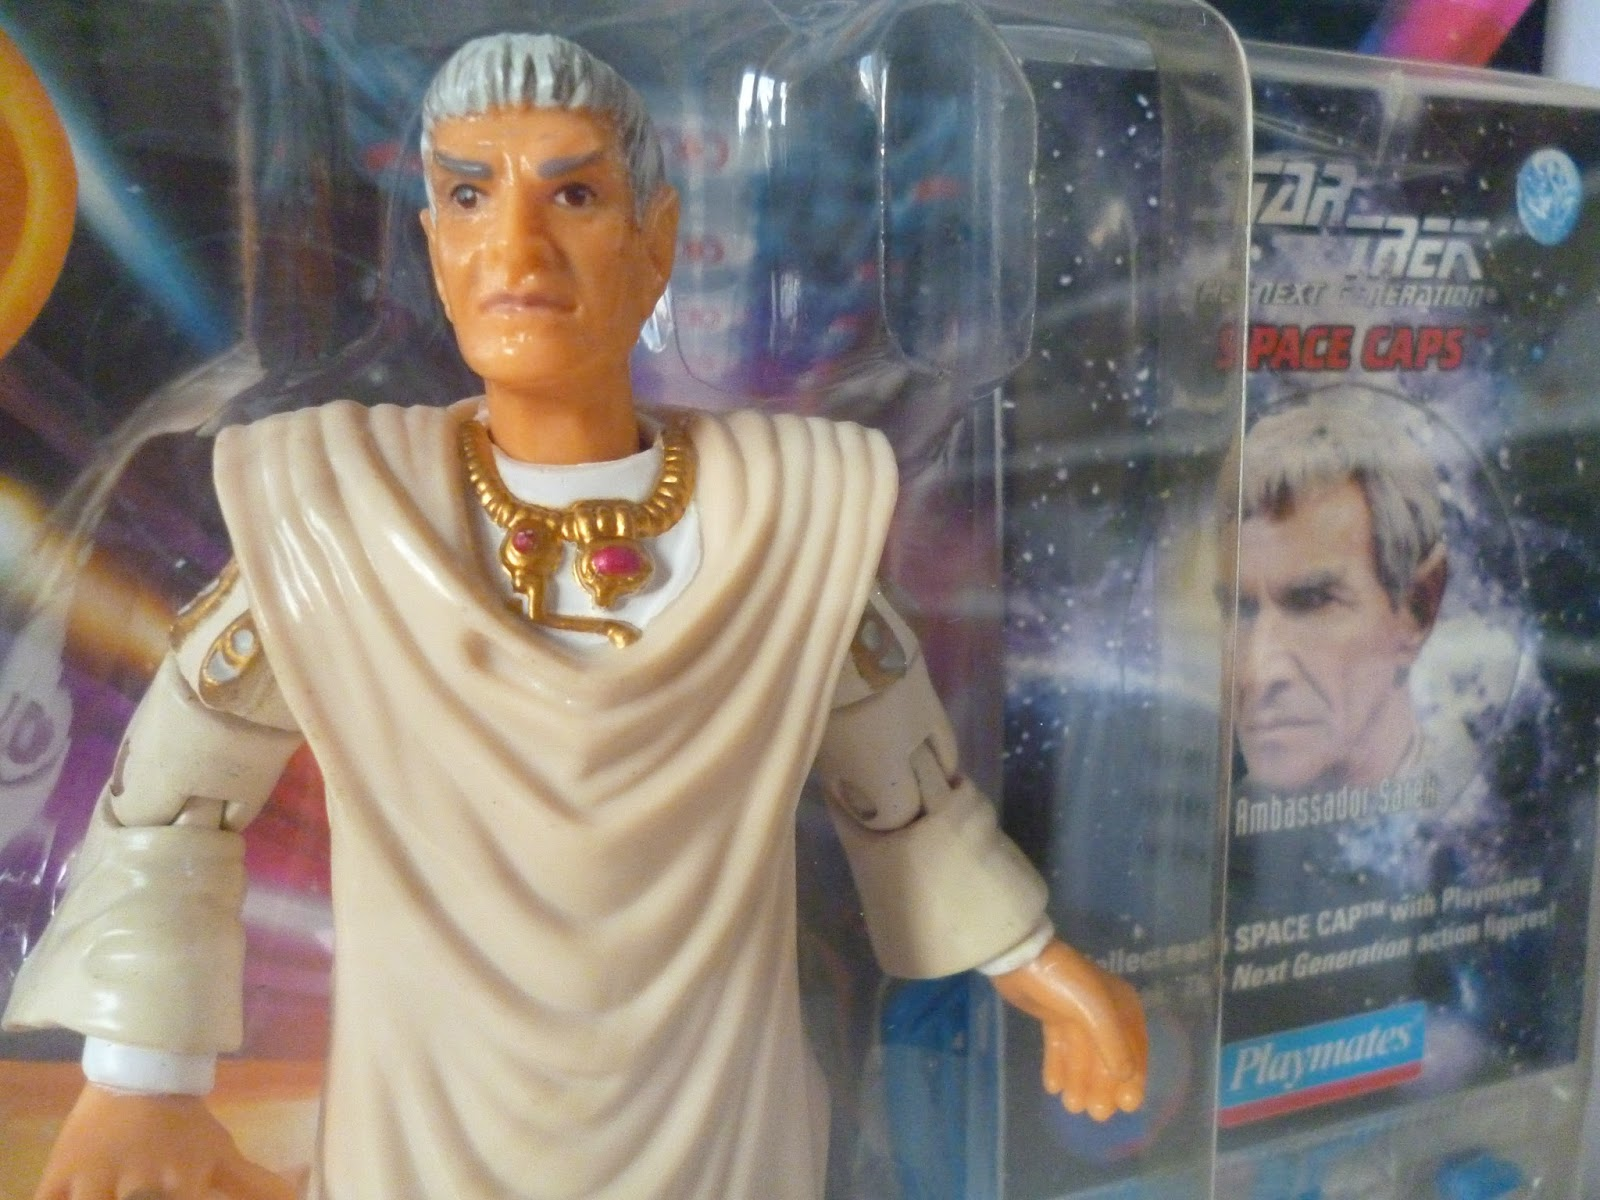 Star Trek Ambassador Sarek with Space Cap Canada